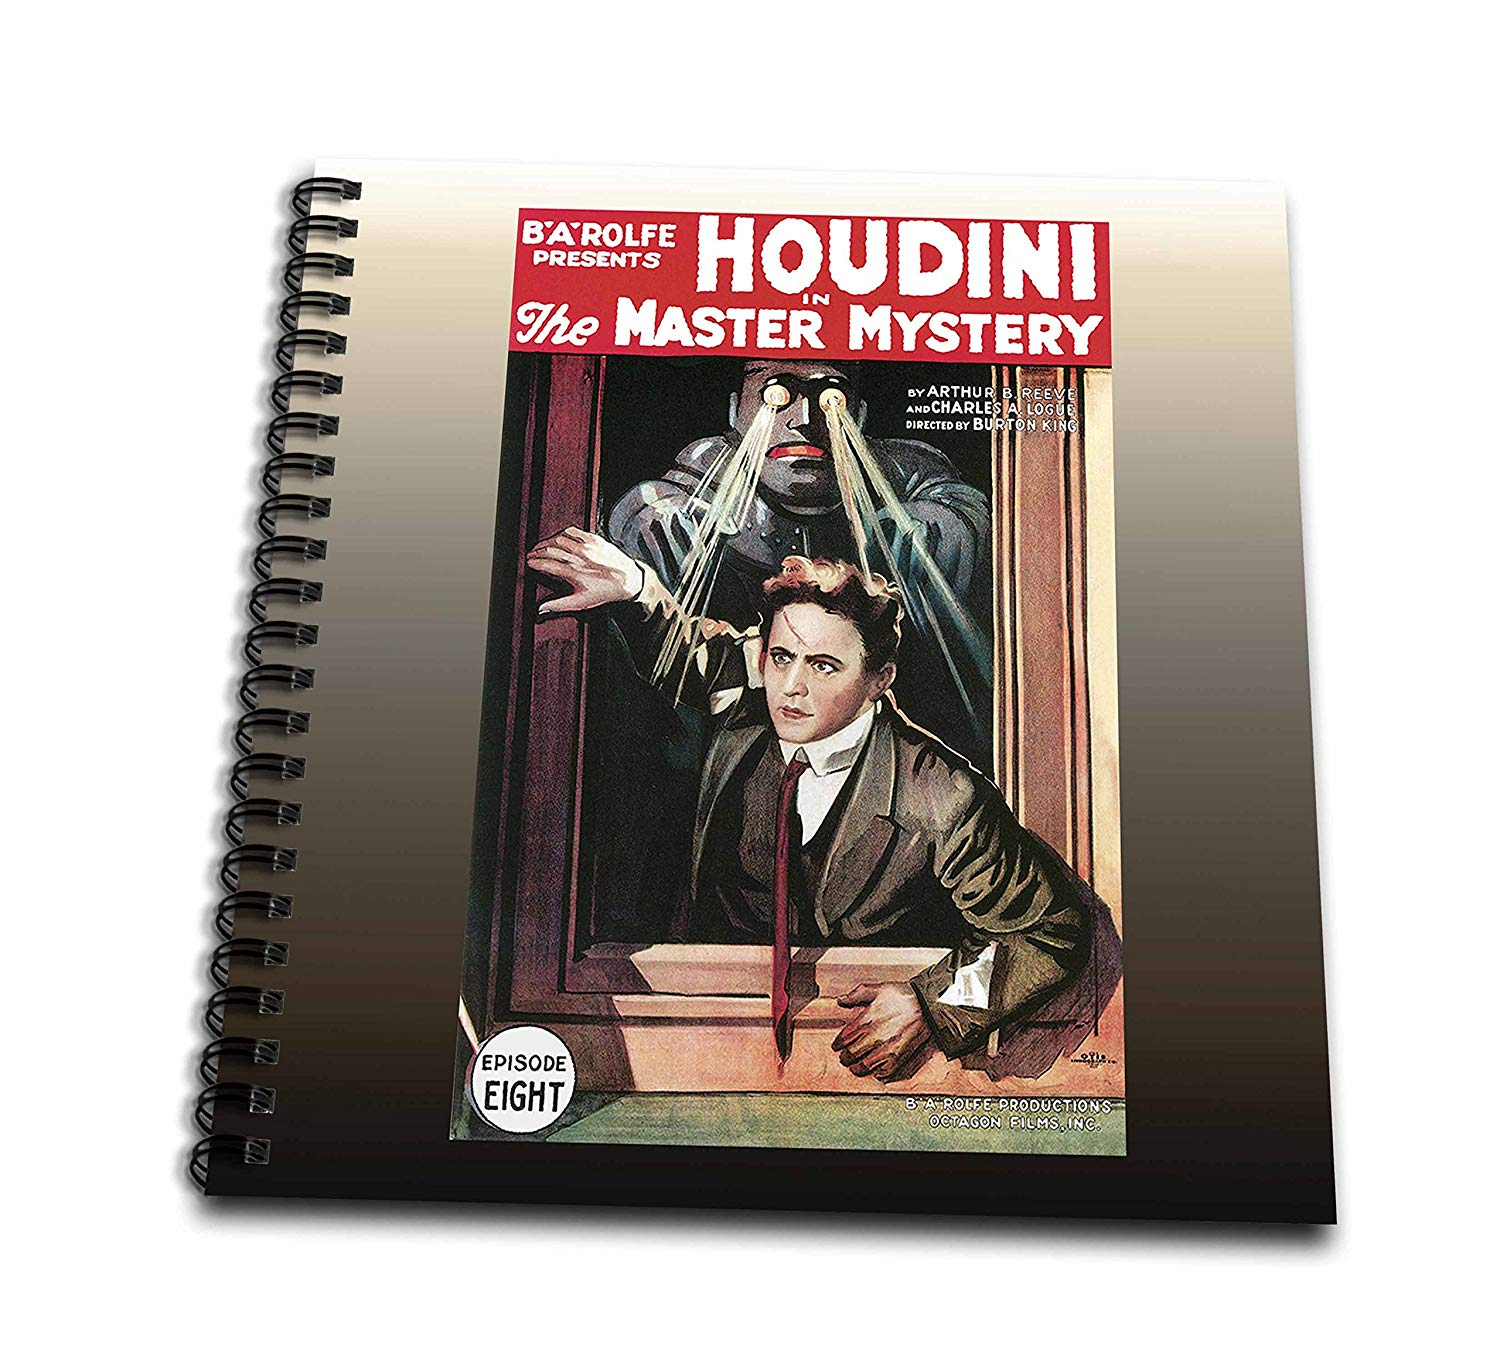 3dRose db_114148_2 Vintage Houdini in The Master Mystery Episode Eight Advertising Poster-Memory Book, 12 by 12-Inch